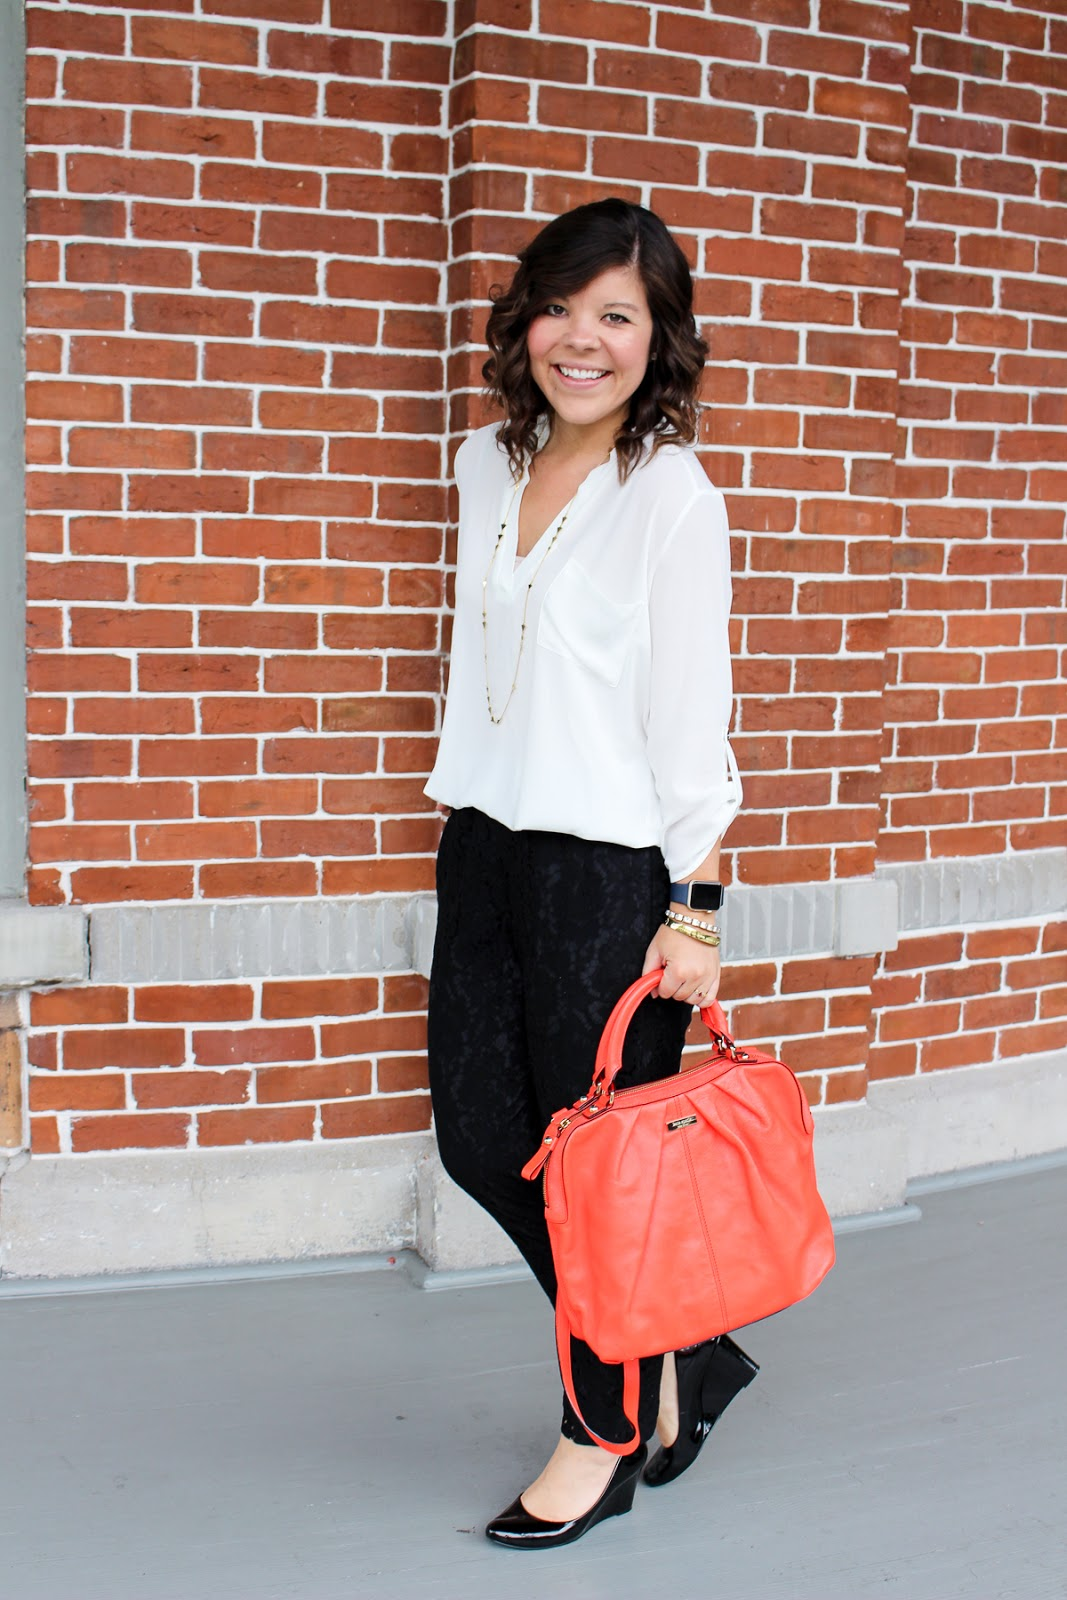 Workweek Chic: Black Lace + A Life Update!